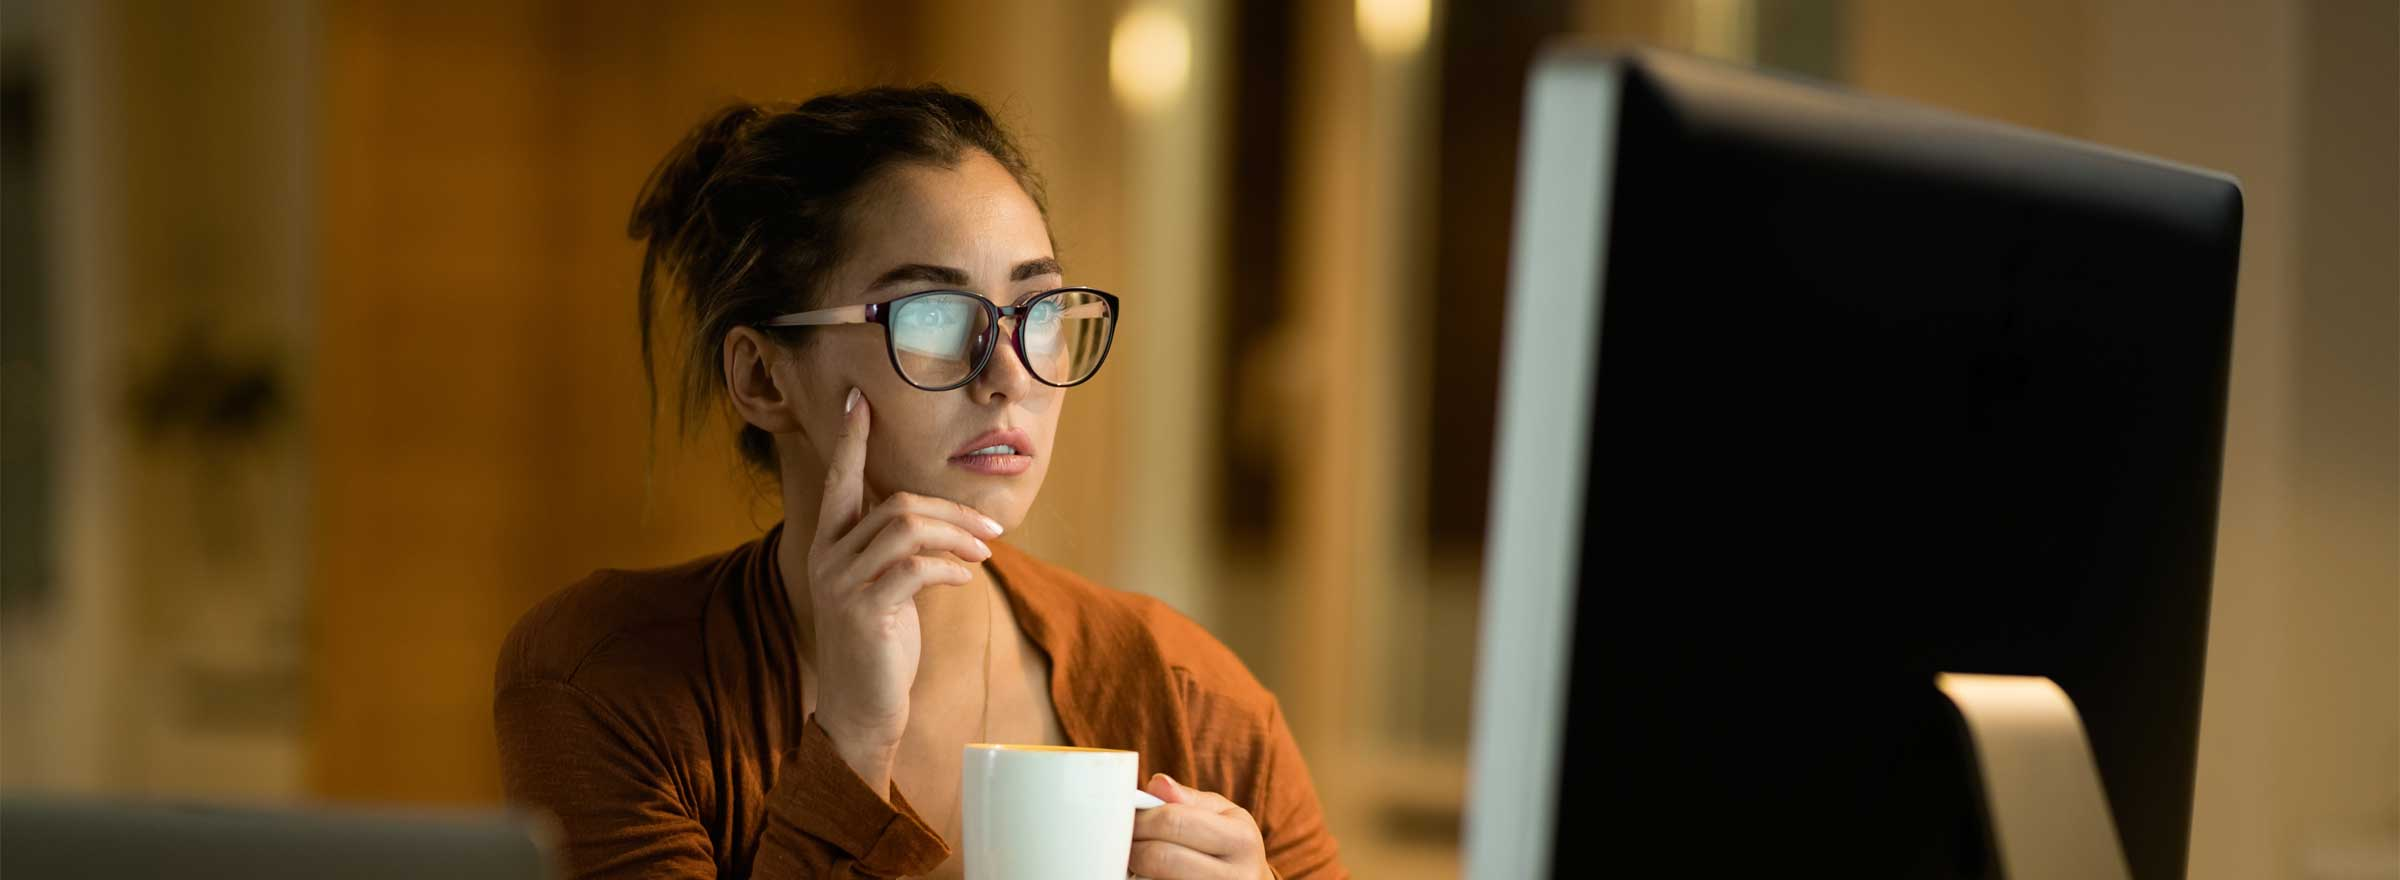 woman holding a mug and gazing at a desktop computer screen